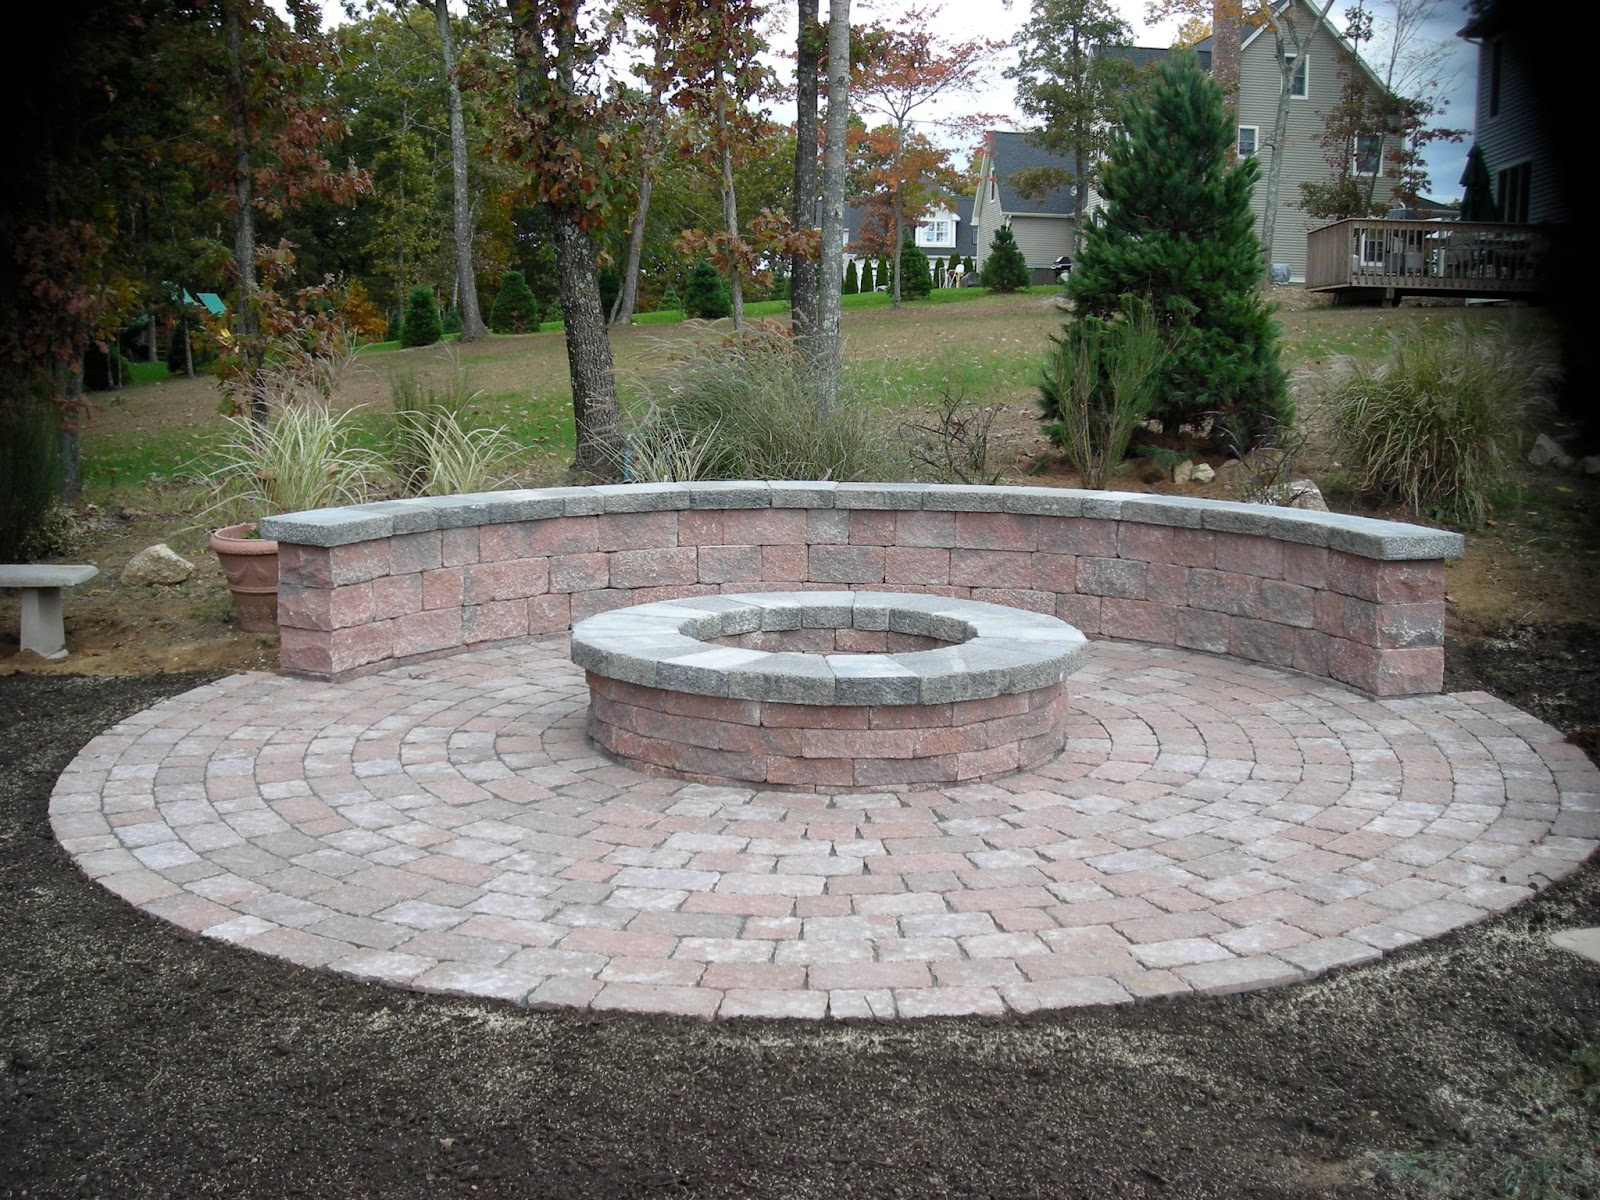 Jonesyinc Keepingupwiththejoneses Round Brick Patio Designs Pictures